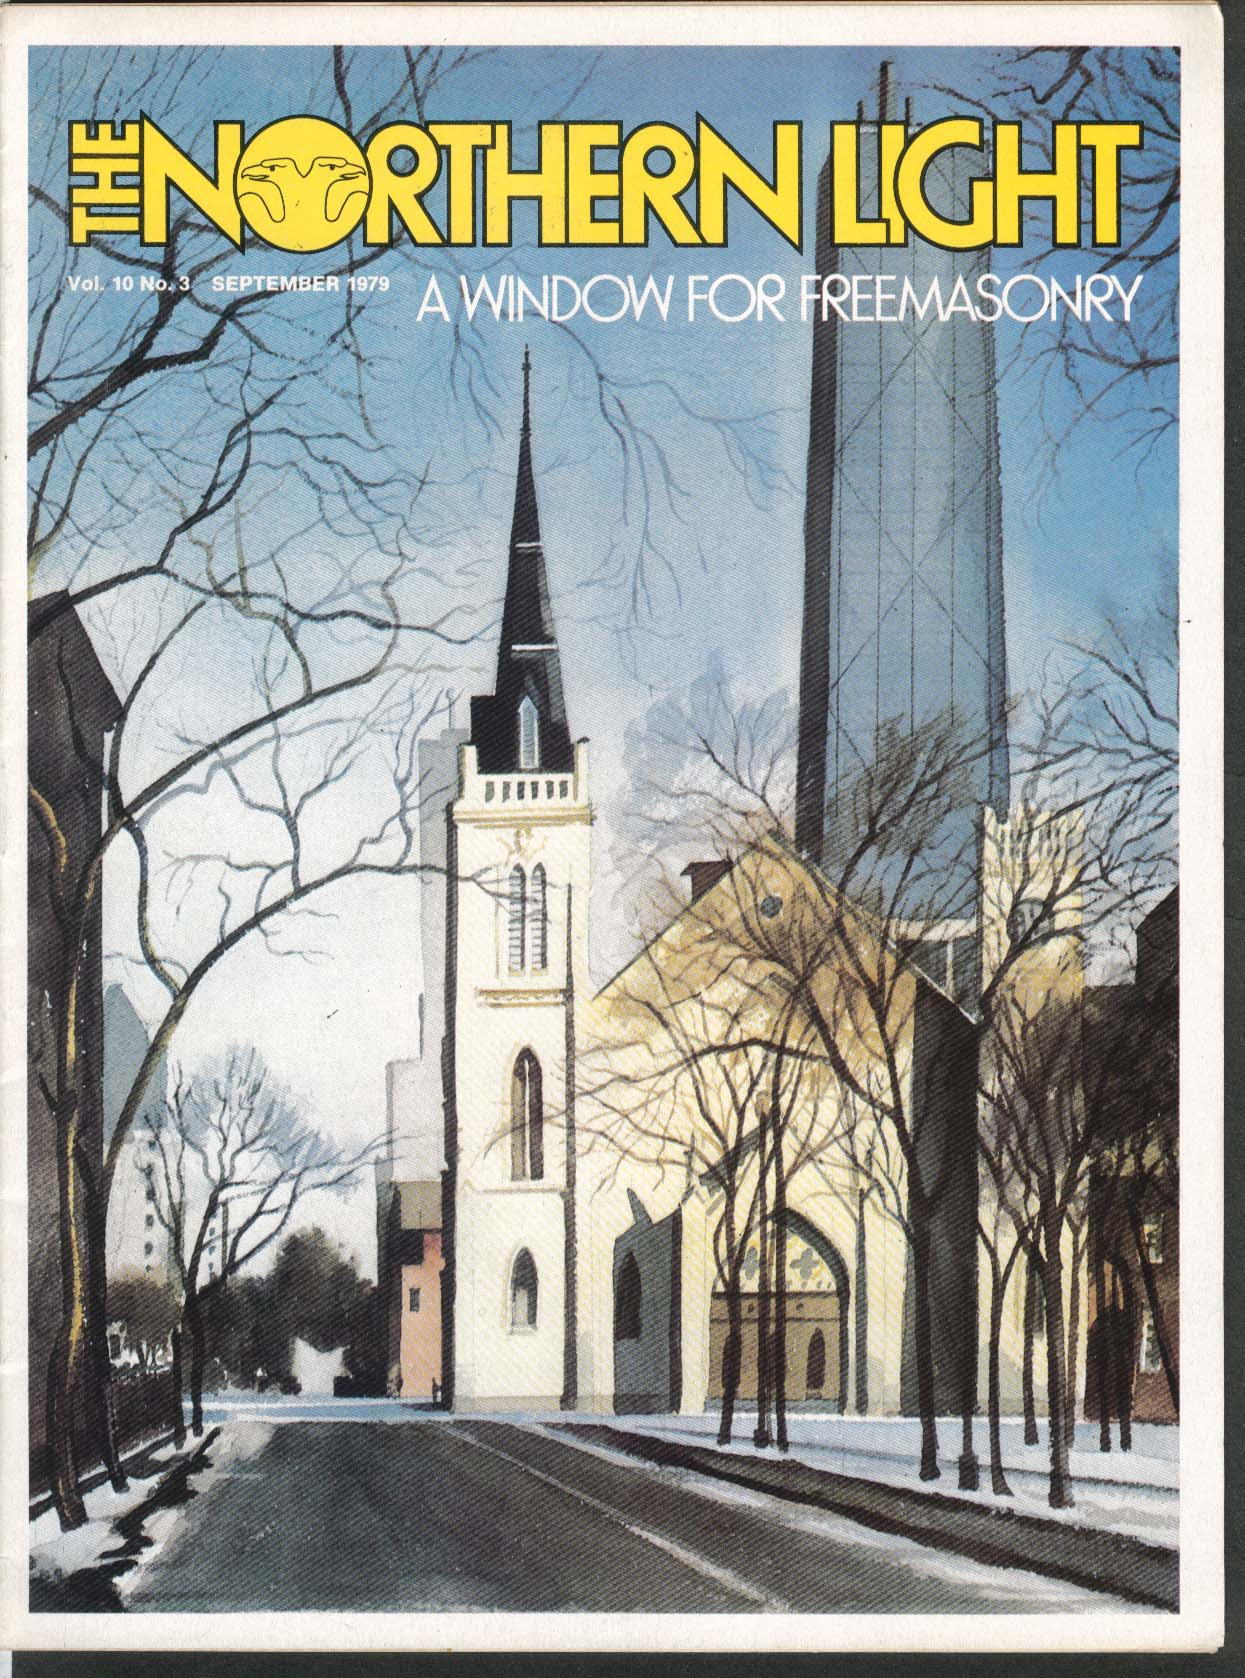 Image for NORTHERN LIGHT Vol 10 #3 John Coustos David Roszel Dalhousie Mason Lodge 9 1979